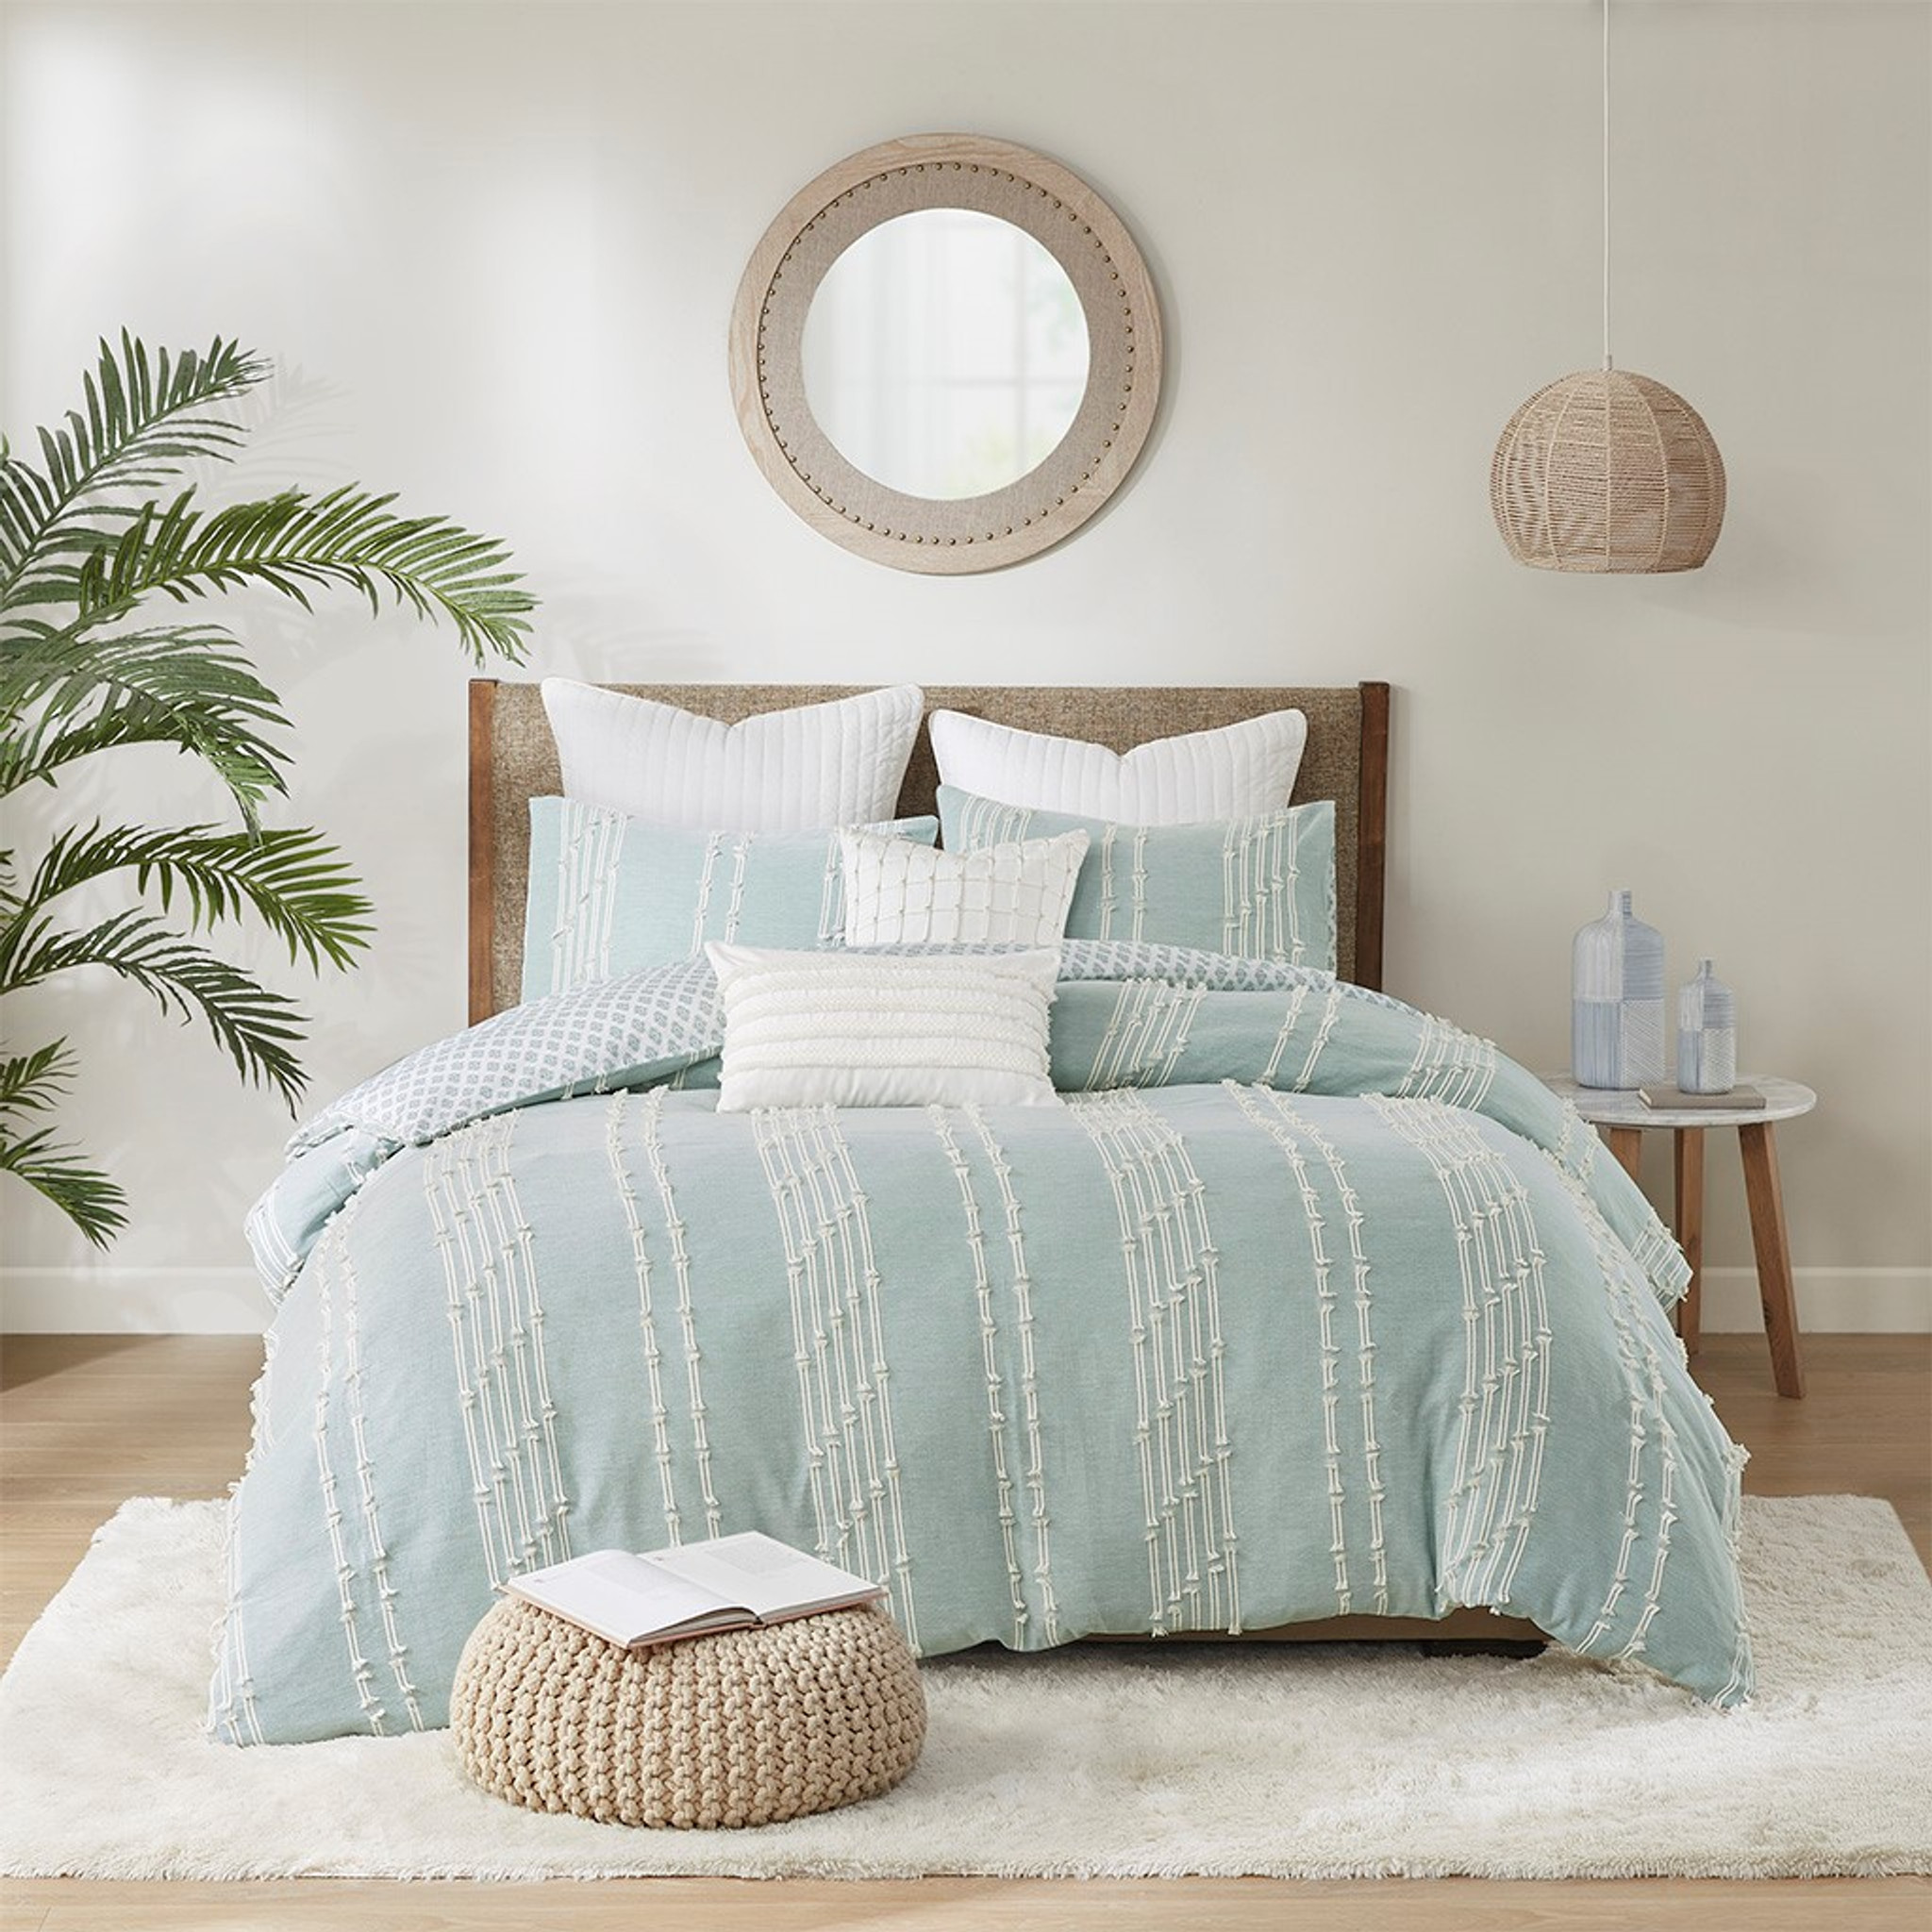 Kai Embellished Aqua Queen Comforter Set Caron S Beach House